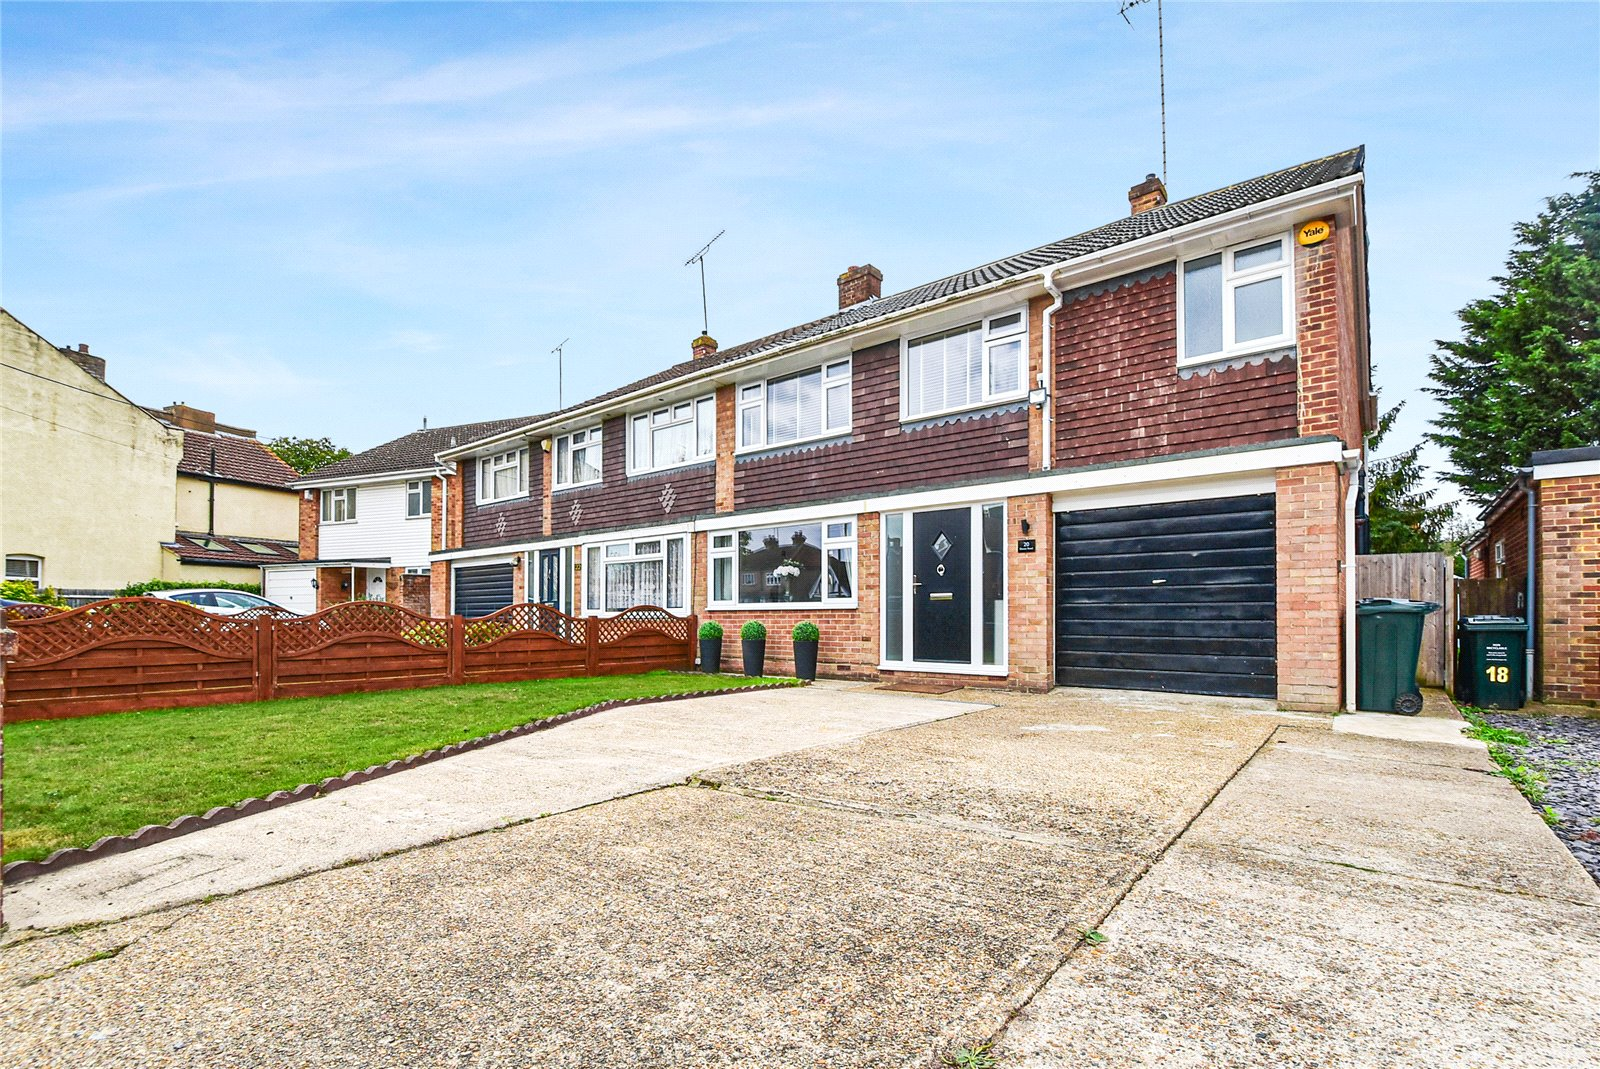 Devon Road, South Darenth, Kent, DA4